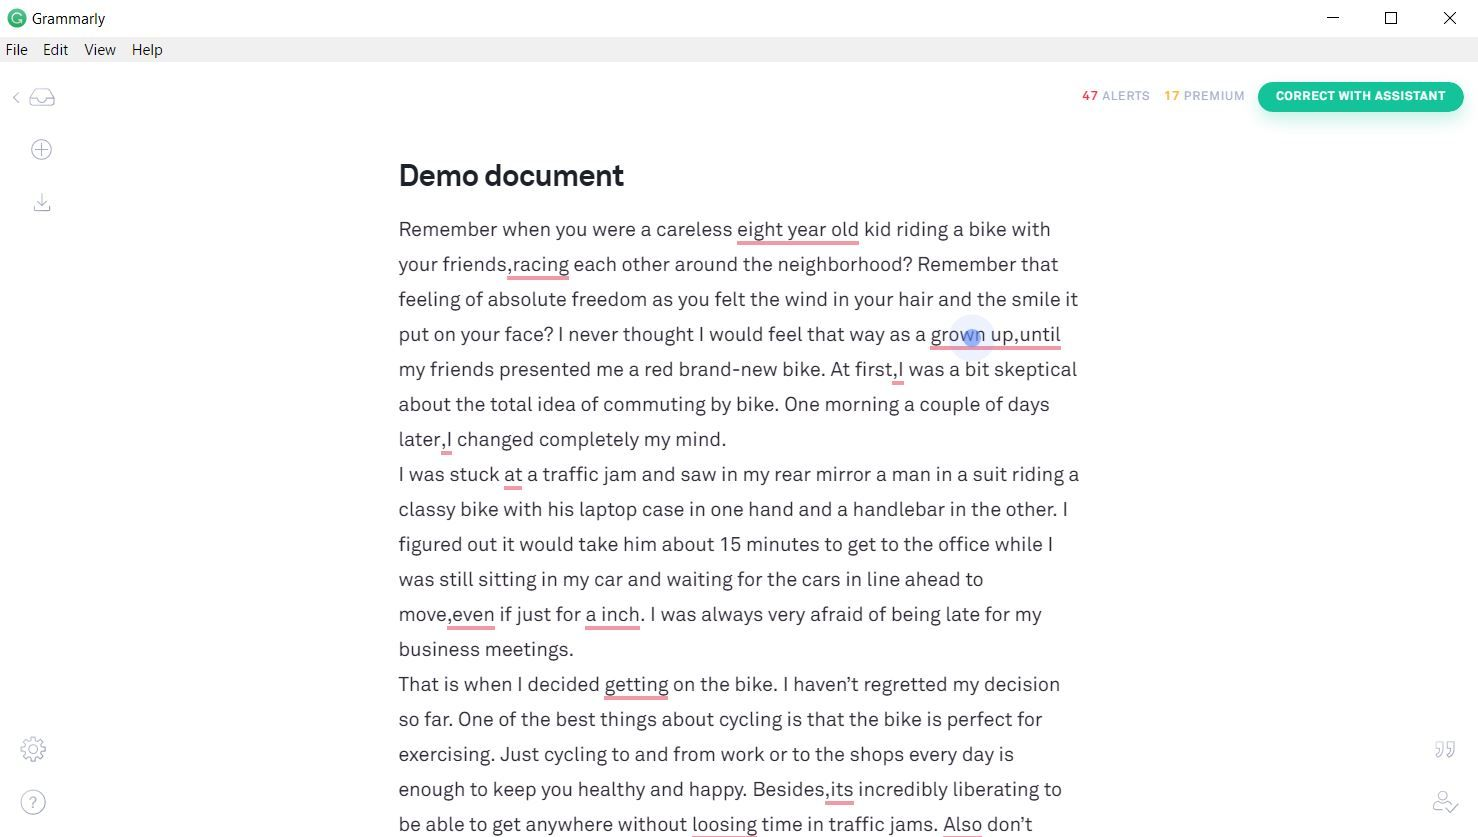 Grammarly - demo document